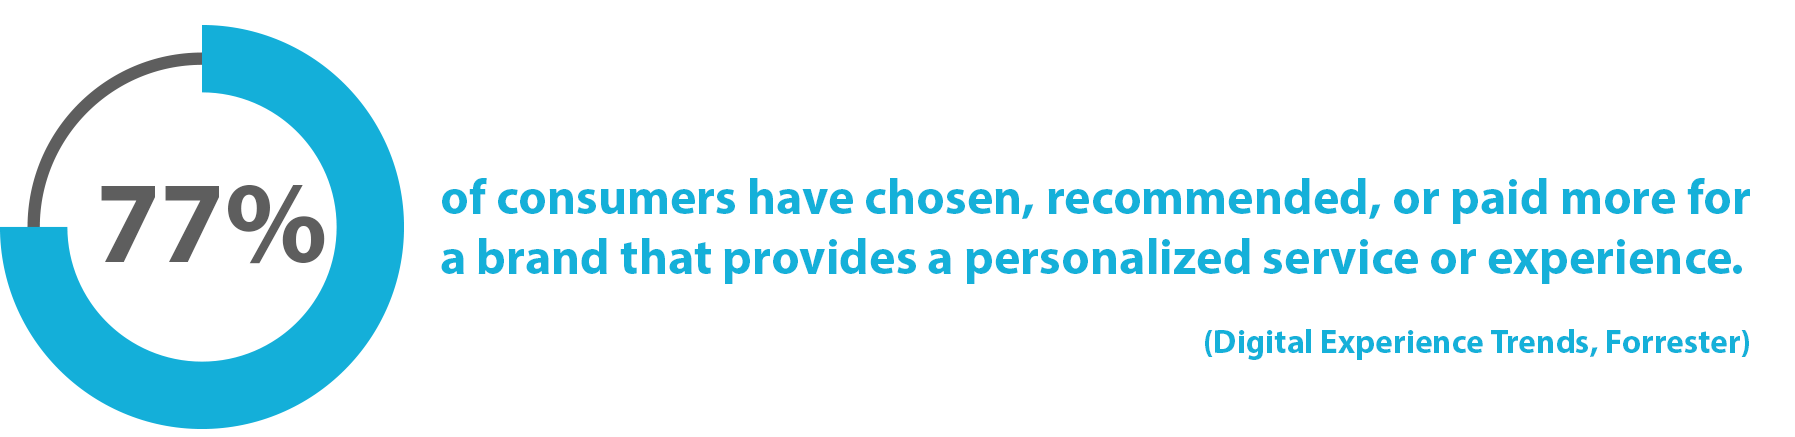 Statistic: 77% of consumers have chosen, recommended, or paid more for a brand that provides a personalized service or experience (Digital Experience Trends, Forrester)